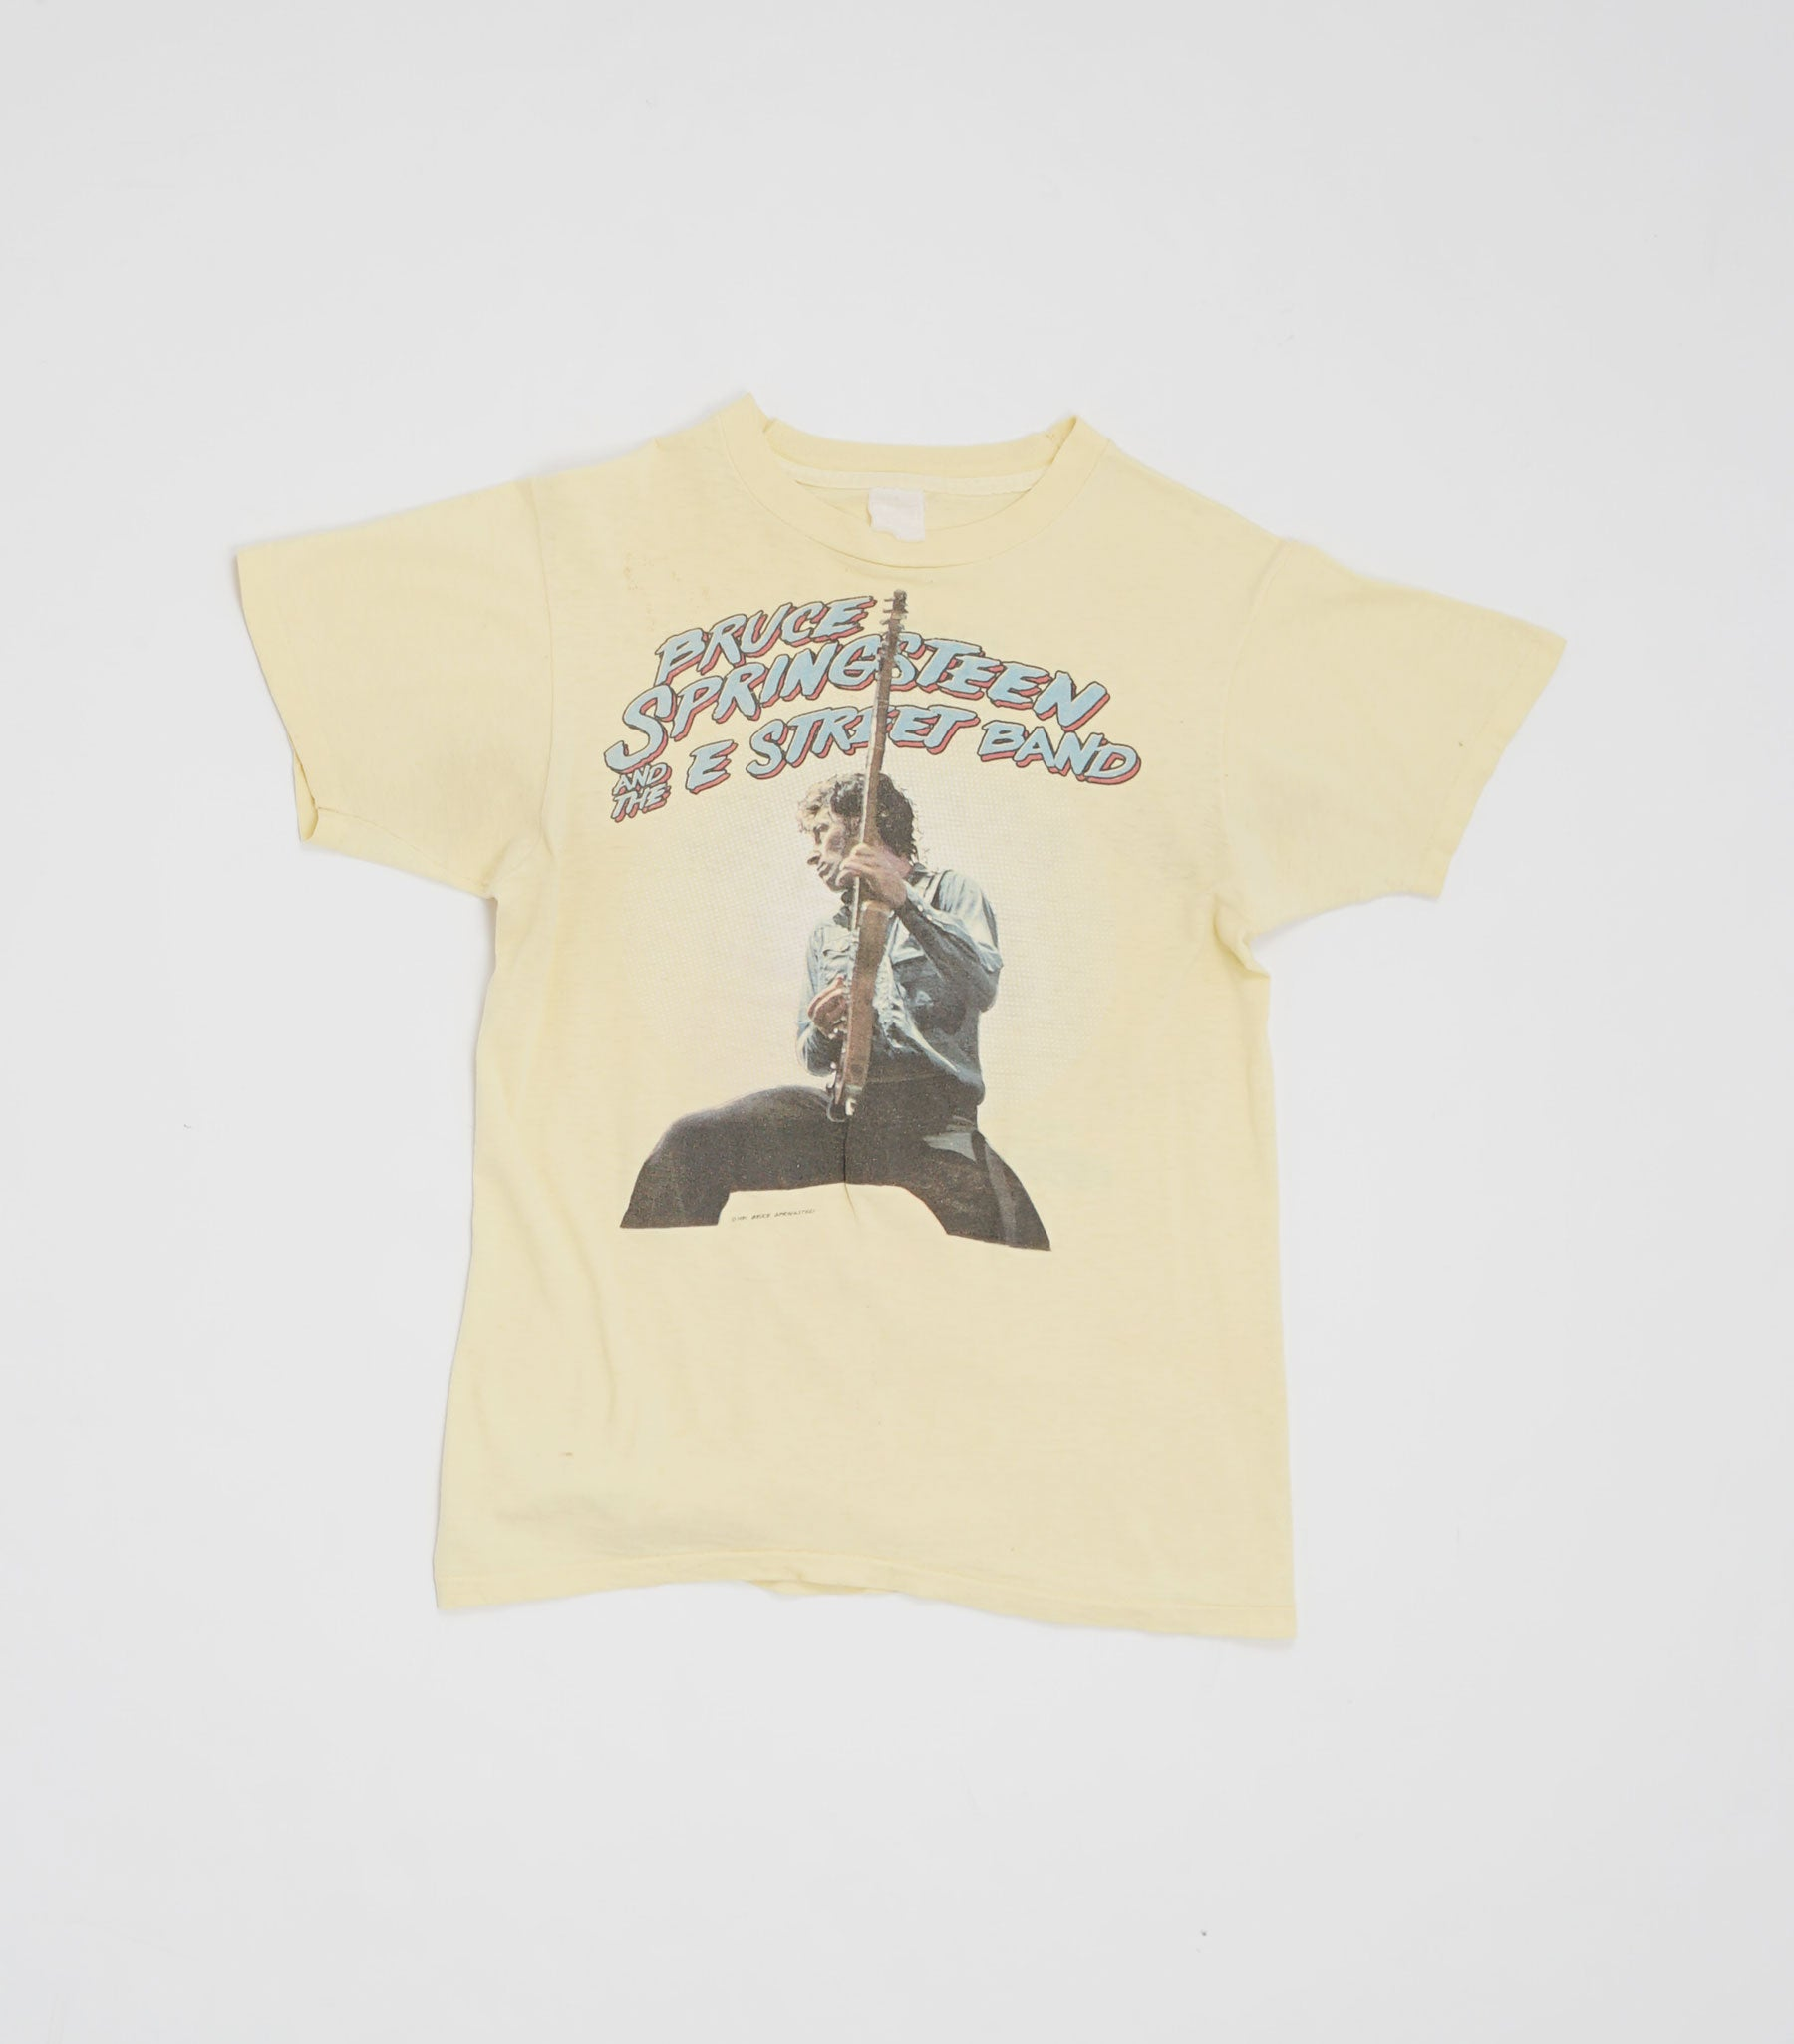 1981 Bruce Springsteen The Meadowlands Arena Tee